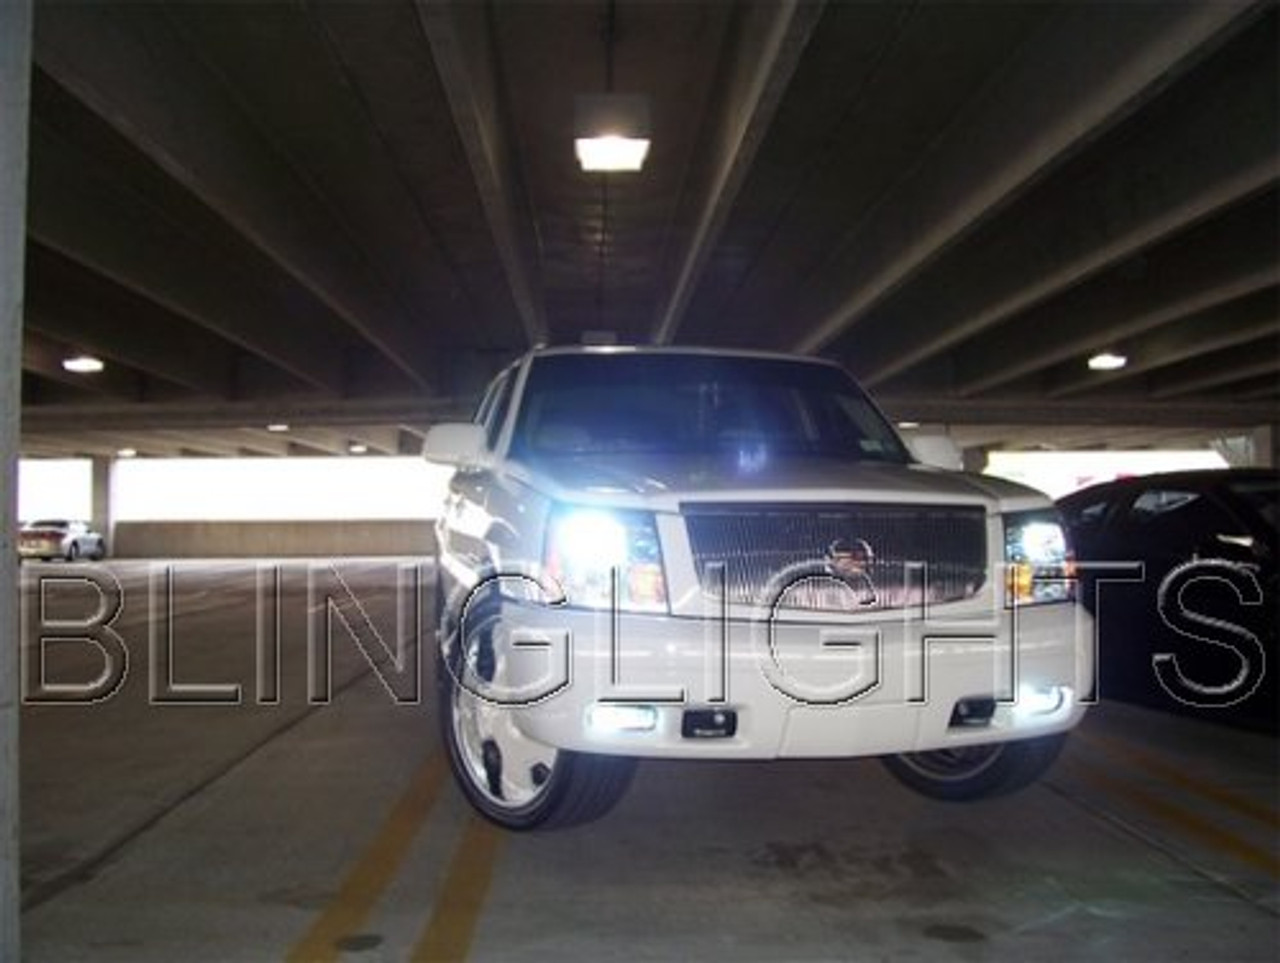 2003 2004 2005 2006 Cadillac Escalade Xenon HID Bulbs Headlamps Headlights Head Lamps Lights ESX EXT